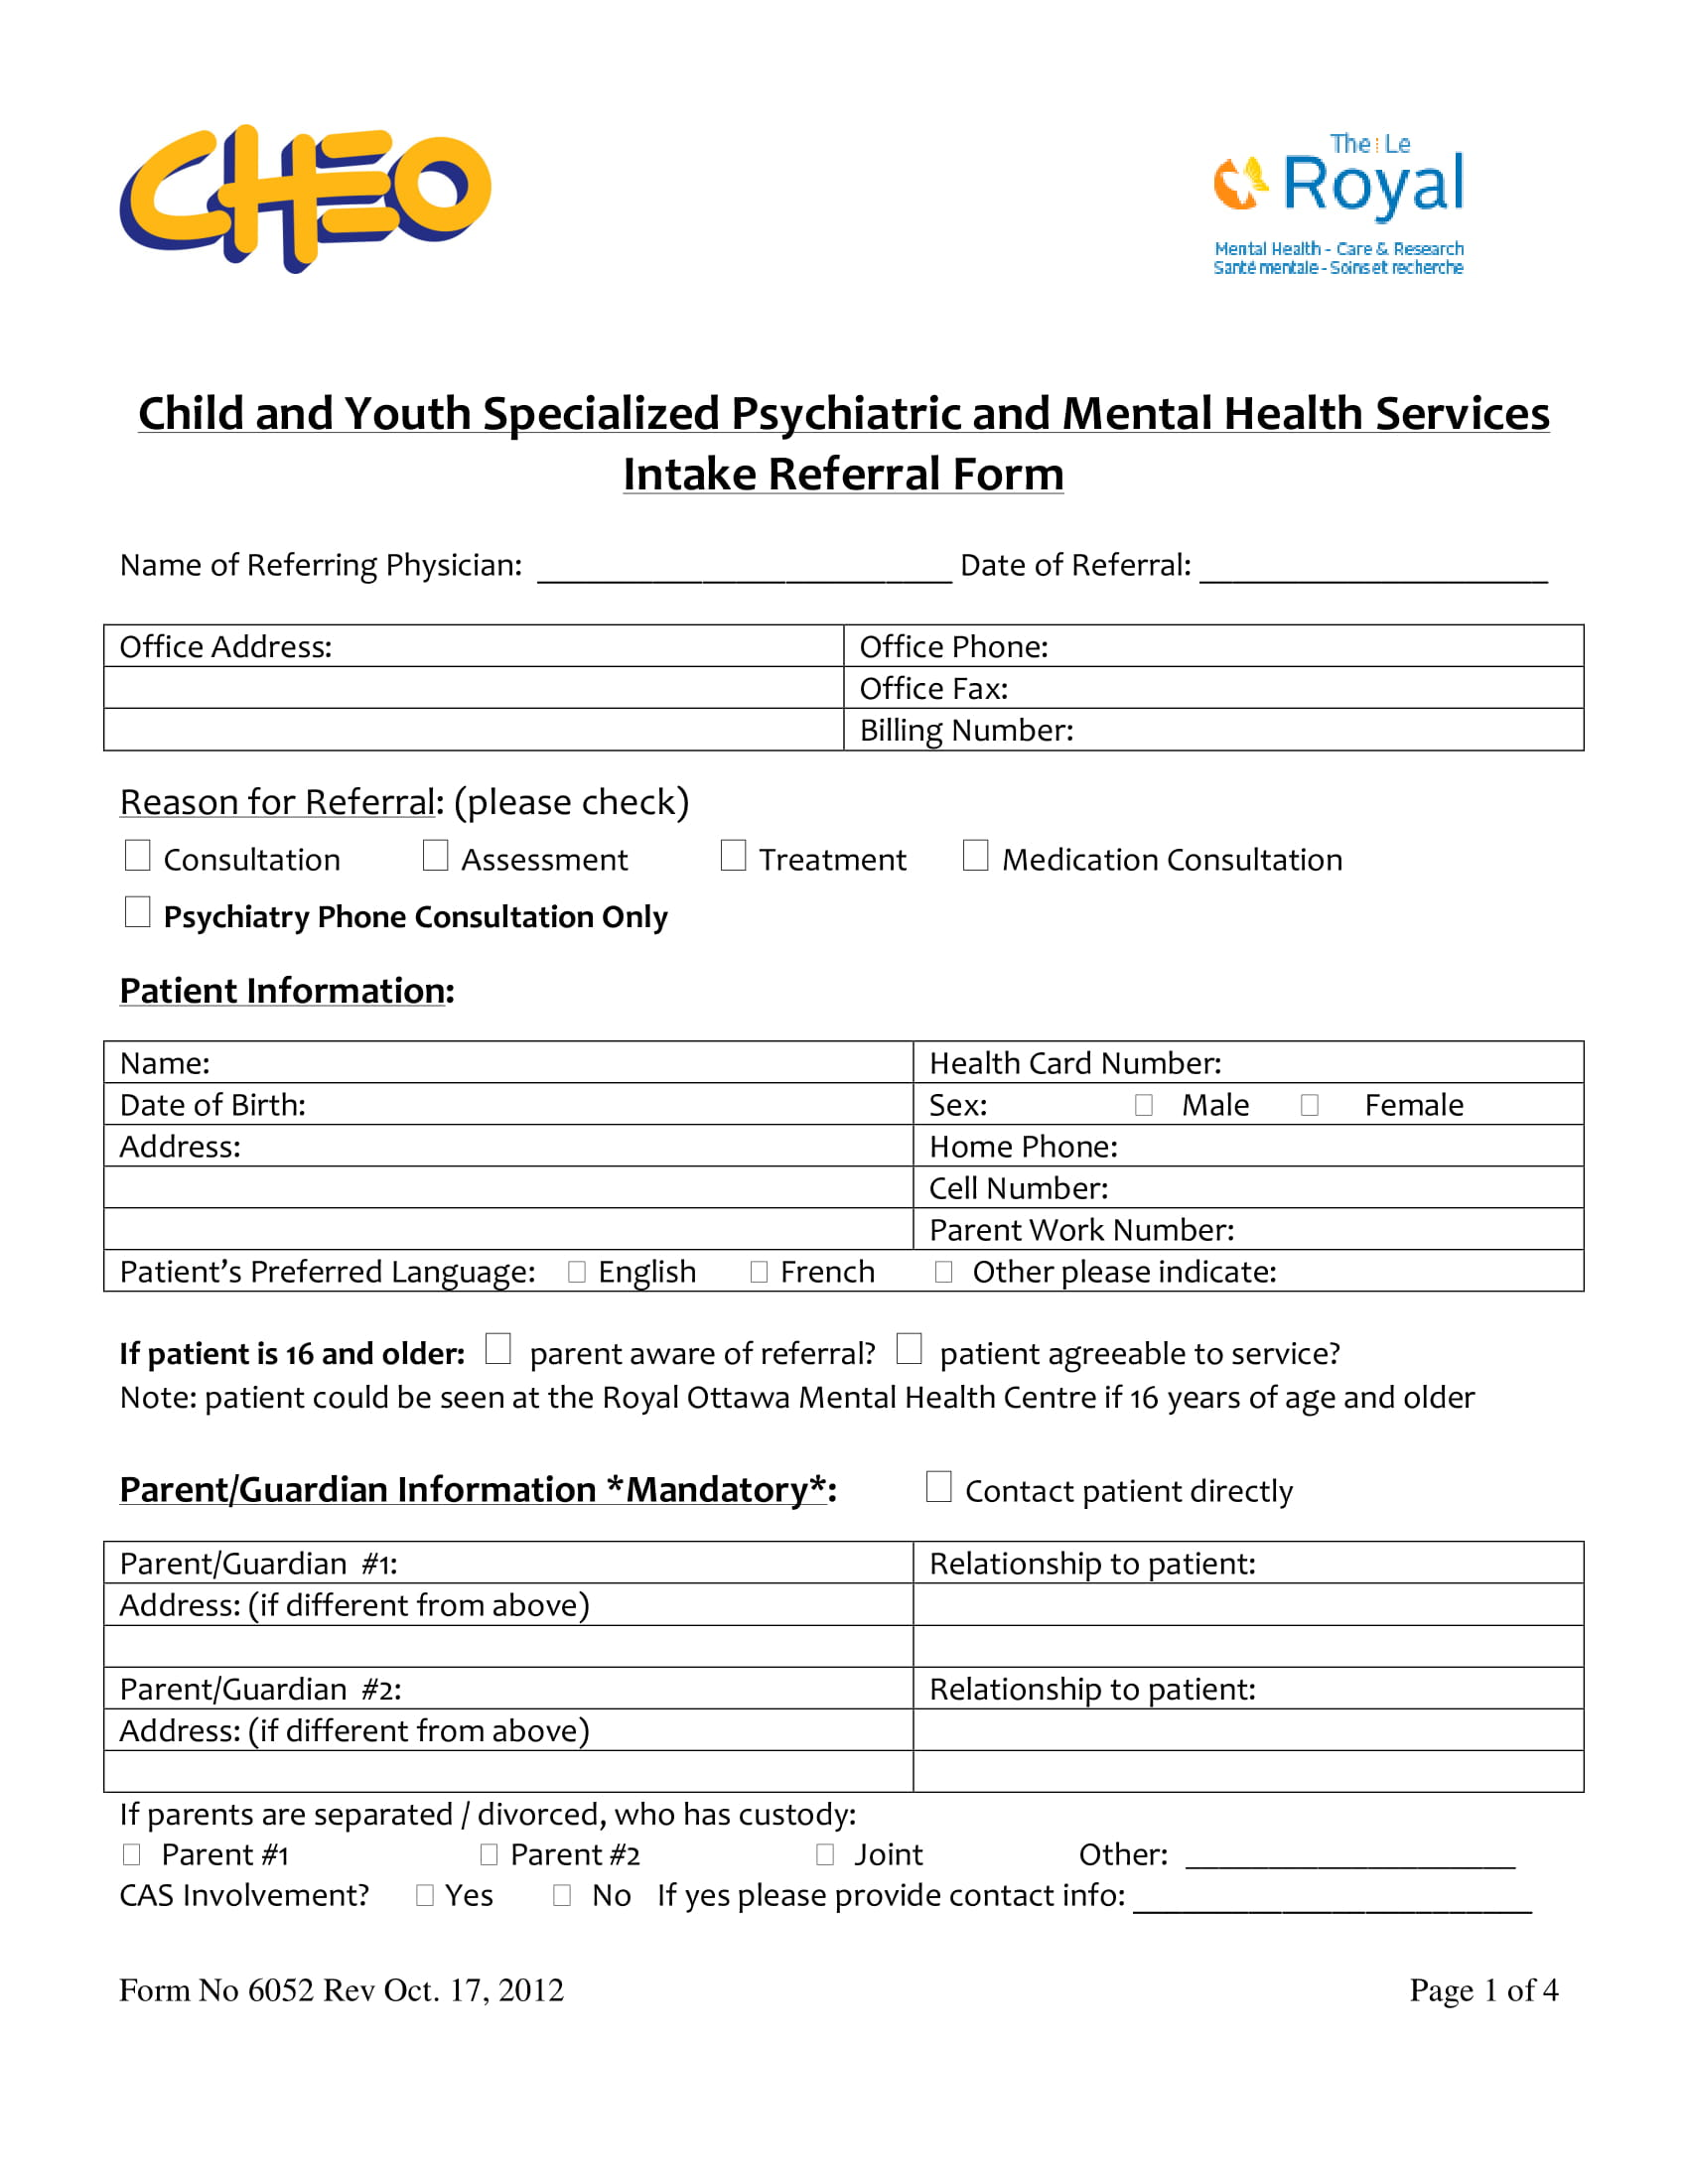 mental health services intake referral form 1